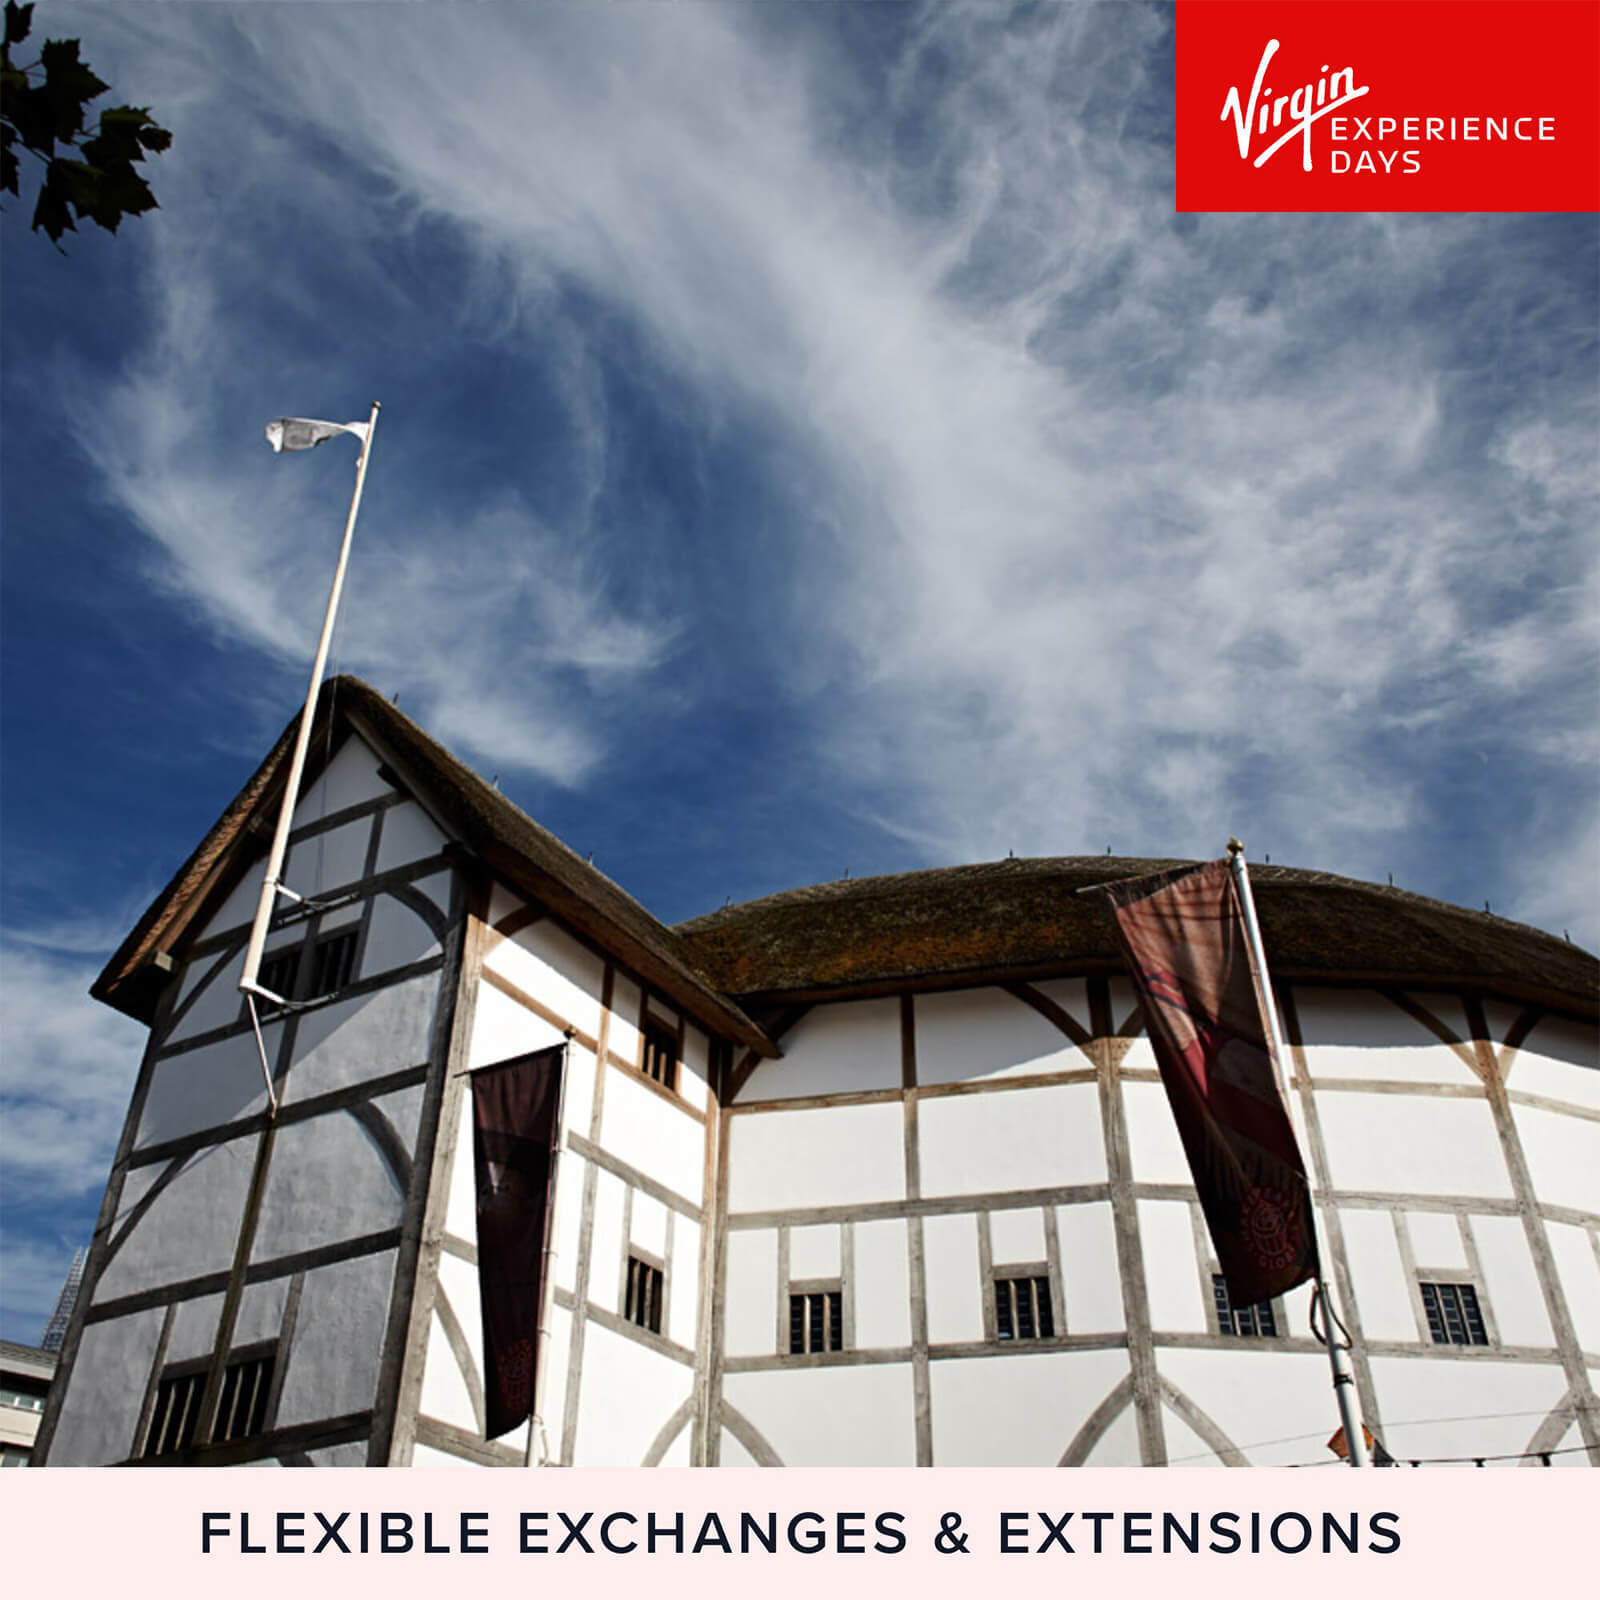 Tour Of Shakespeares Globe Theatre For Two